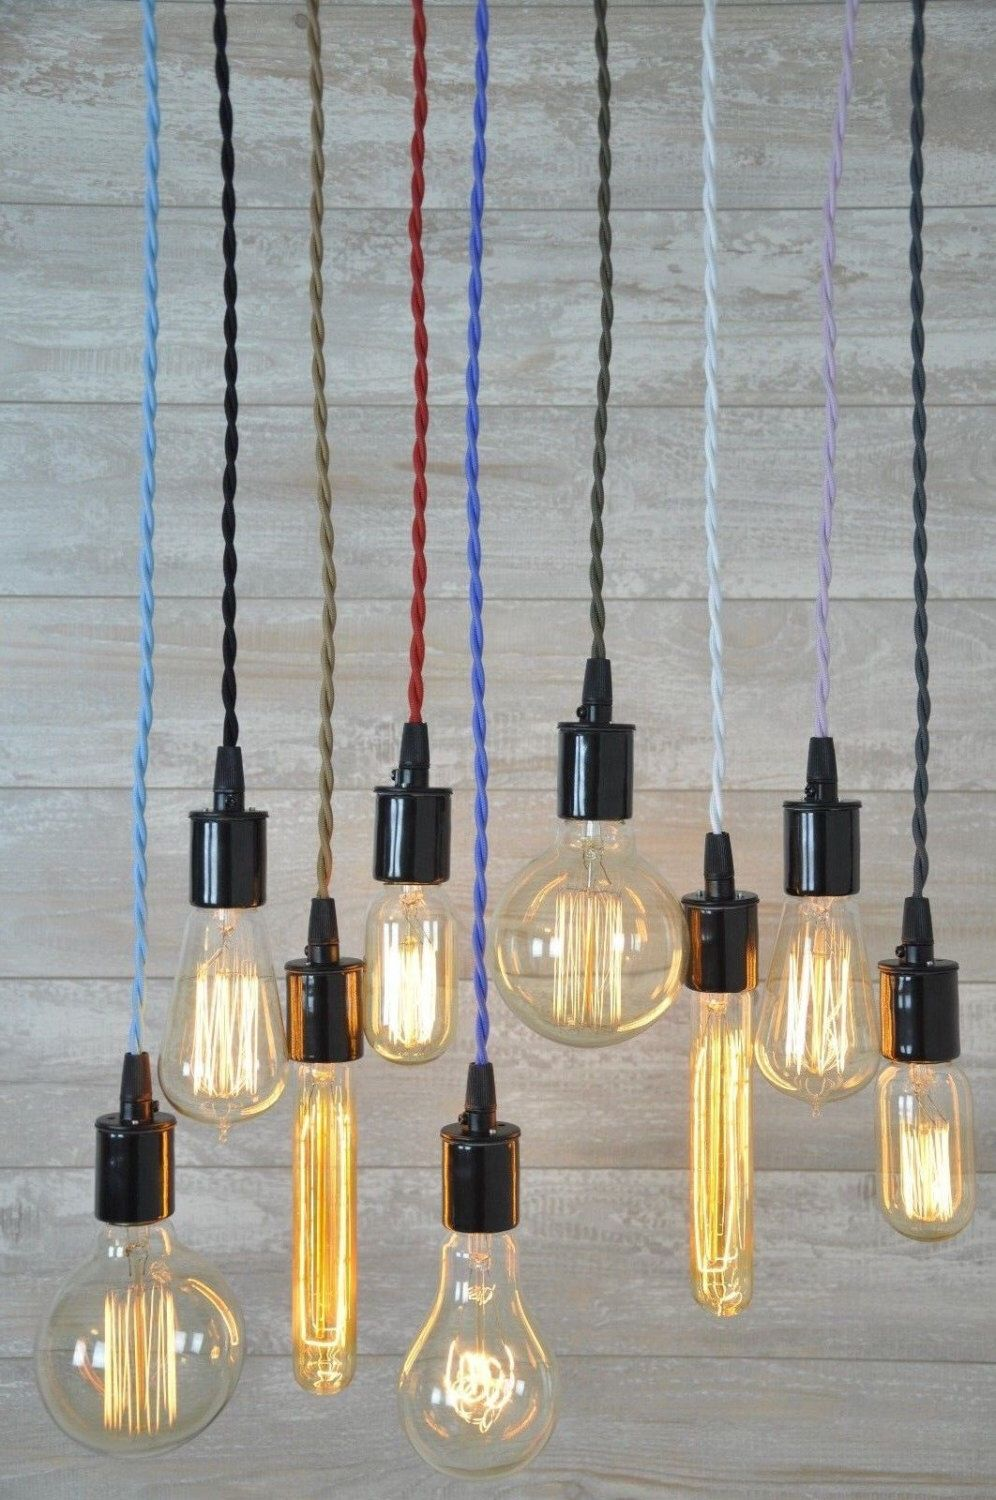 Cord set with bulb socket 8 foot many colors ceiling pendant light cord set with bulb socket 8 foot many colors ceiling pendant light lamp cord by wiresnjars aloadofball Gallery